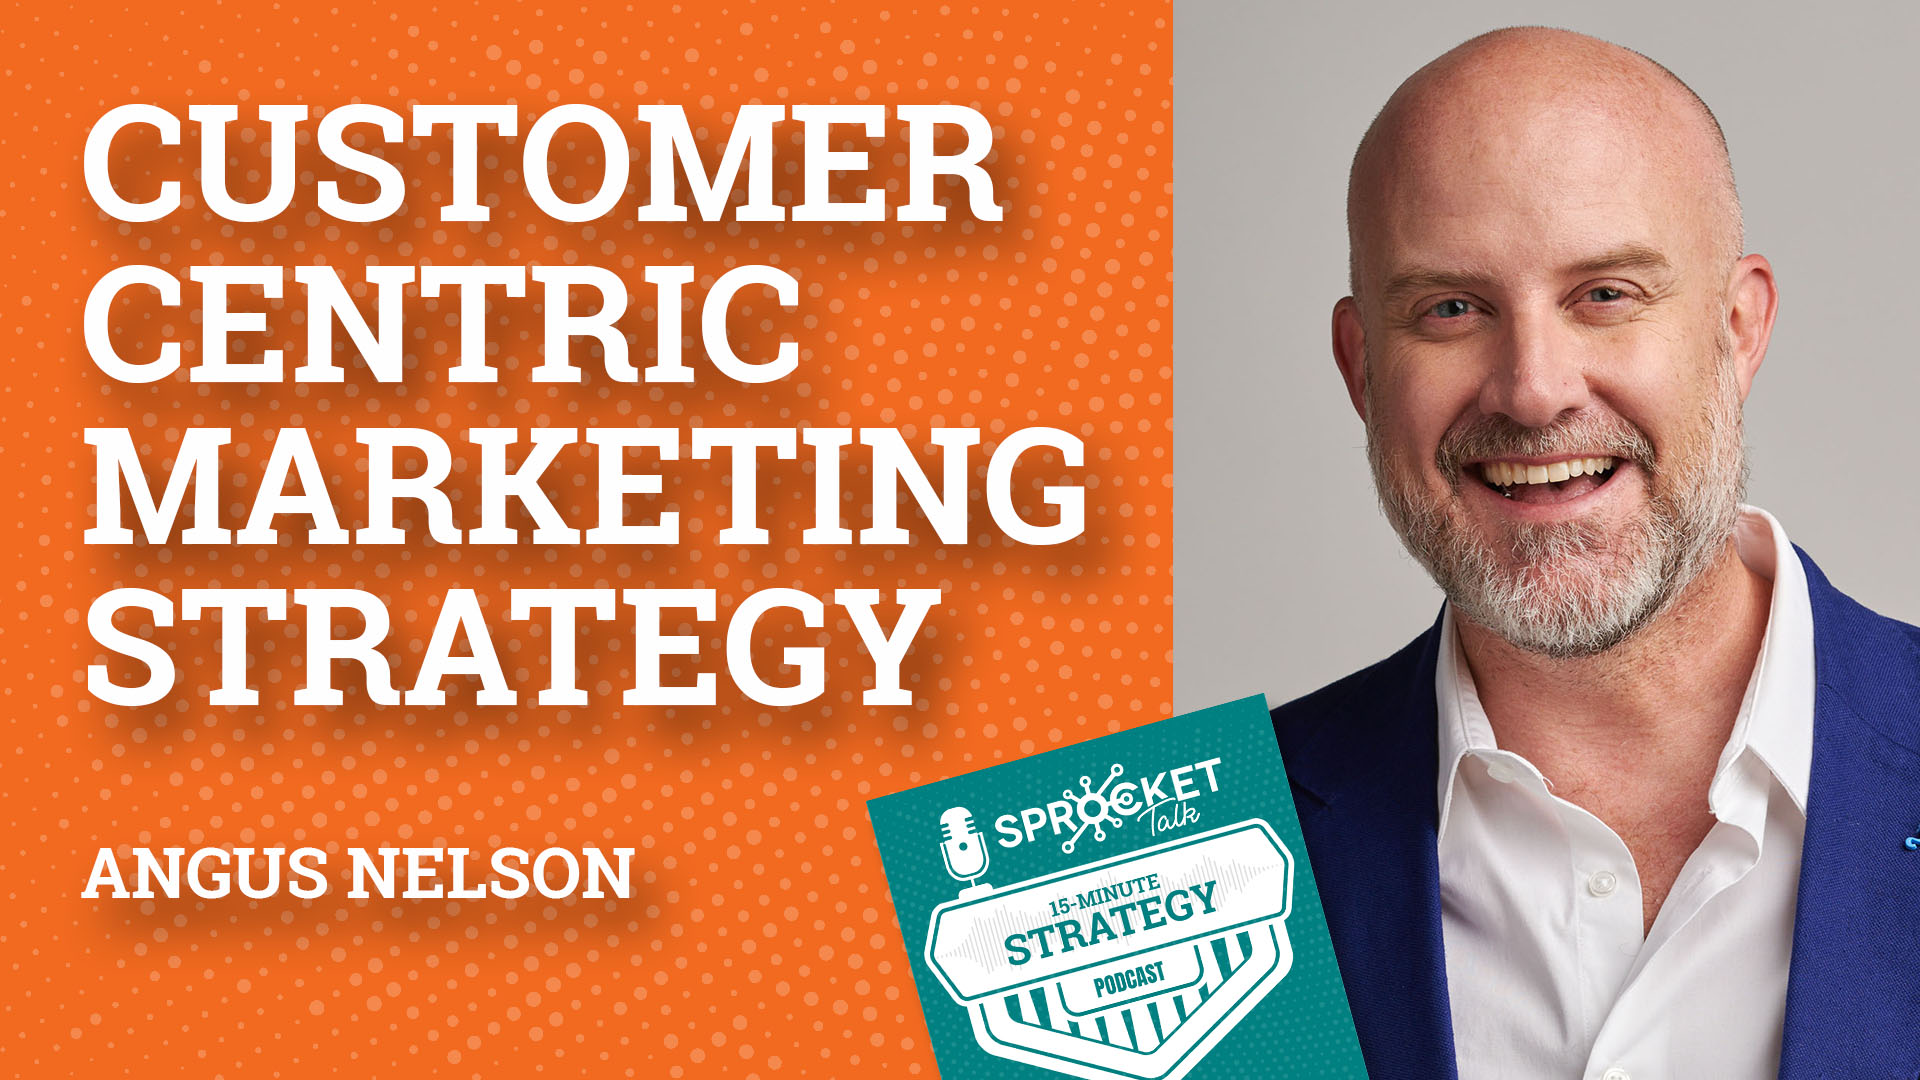 Angus Nelson on a Customer-Centric Marketing Strategy